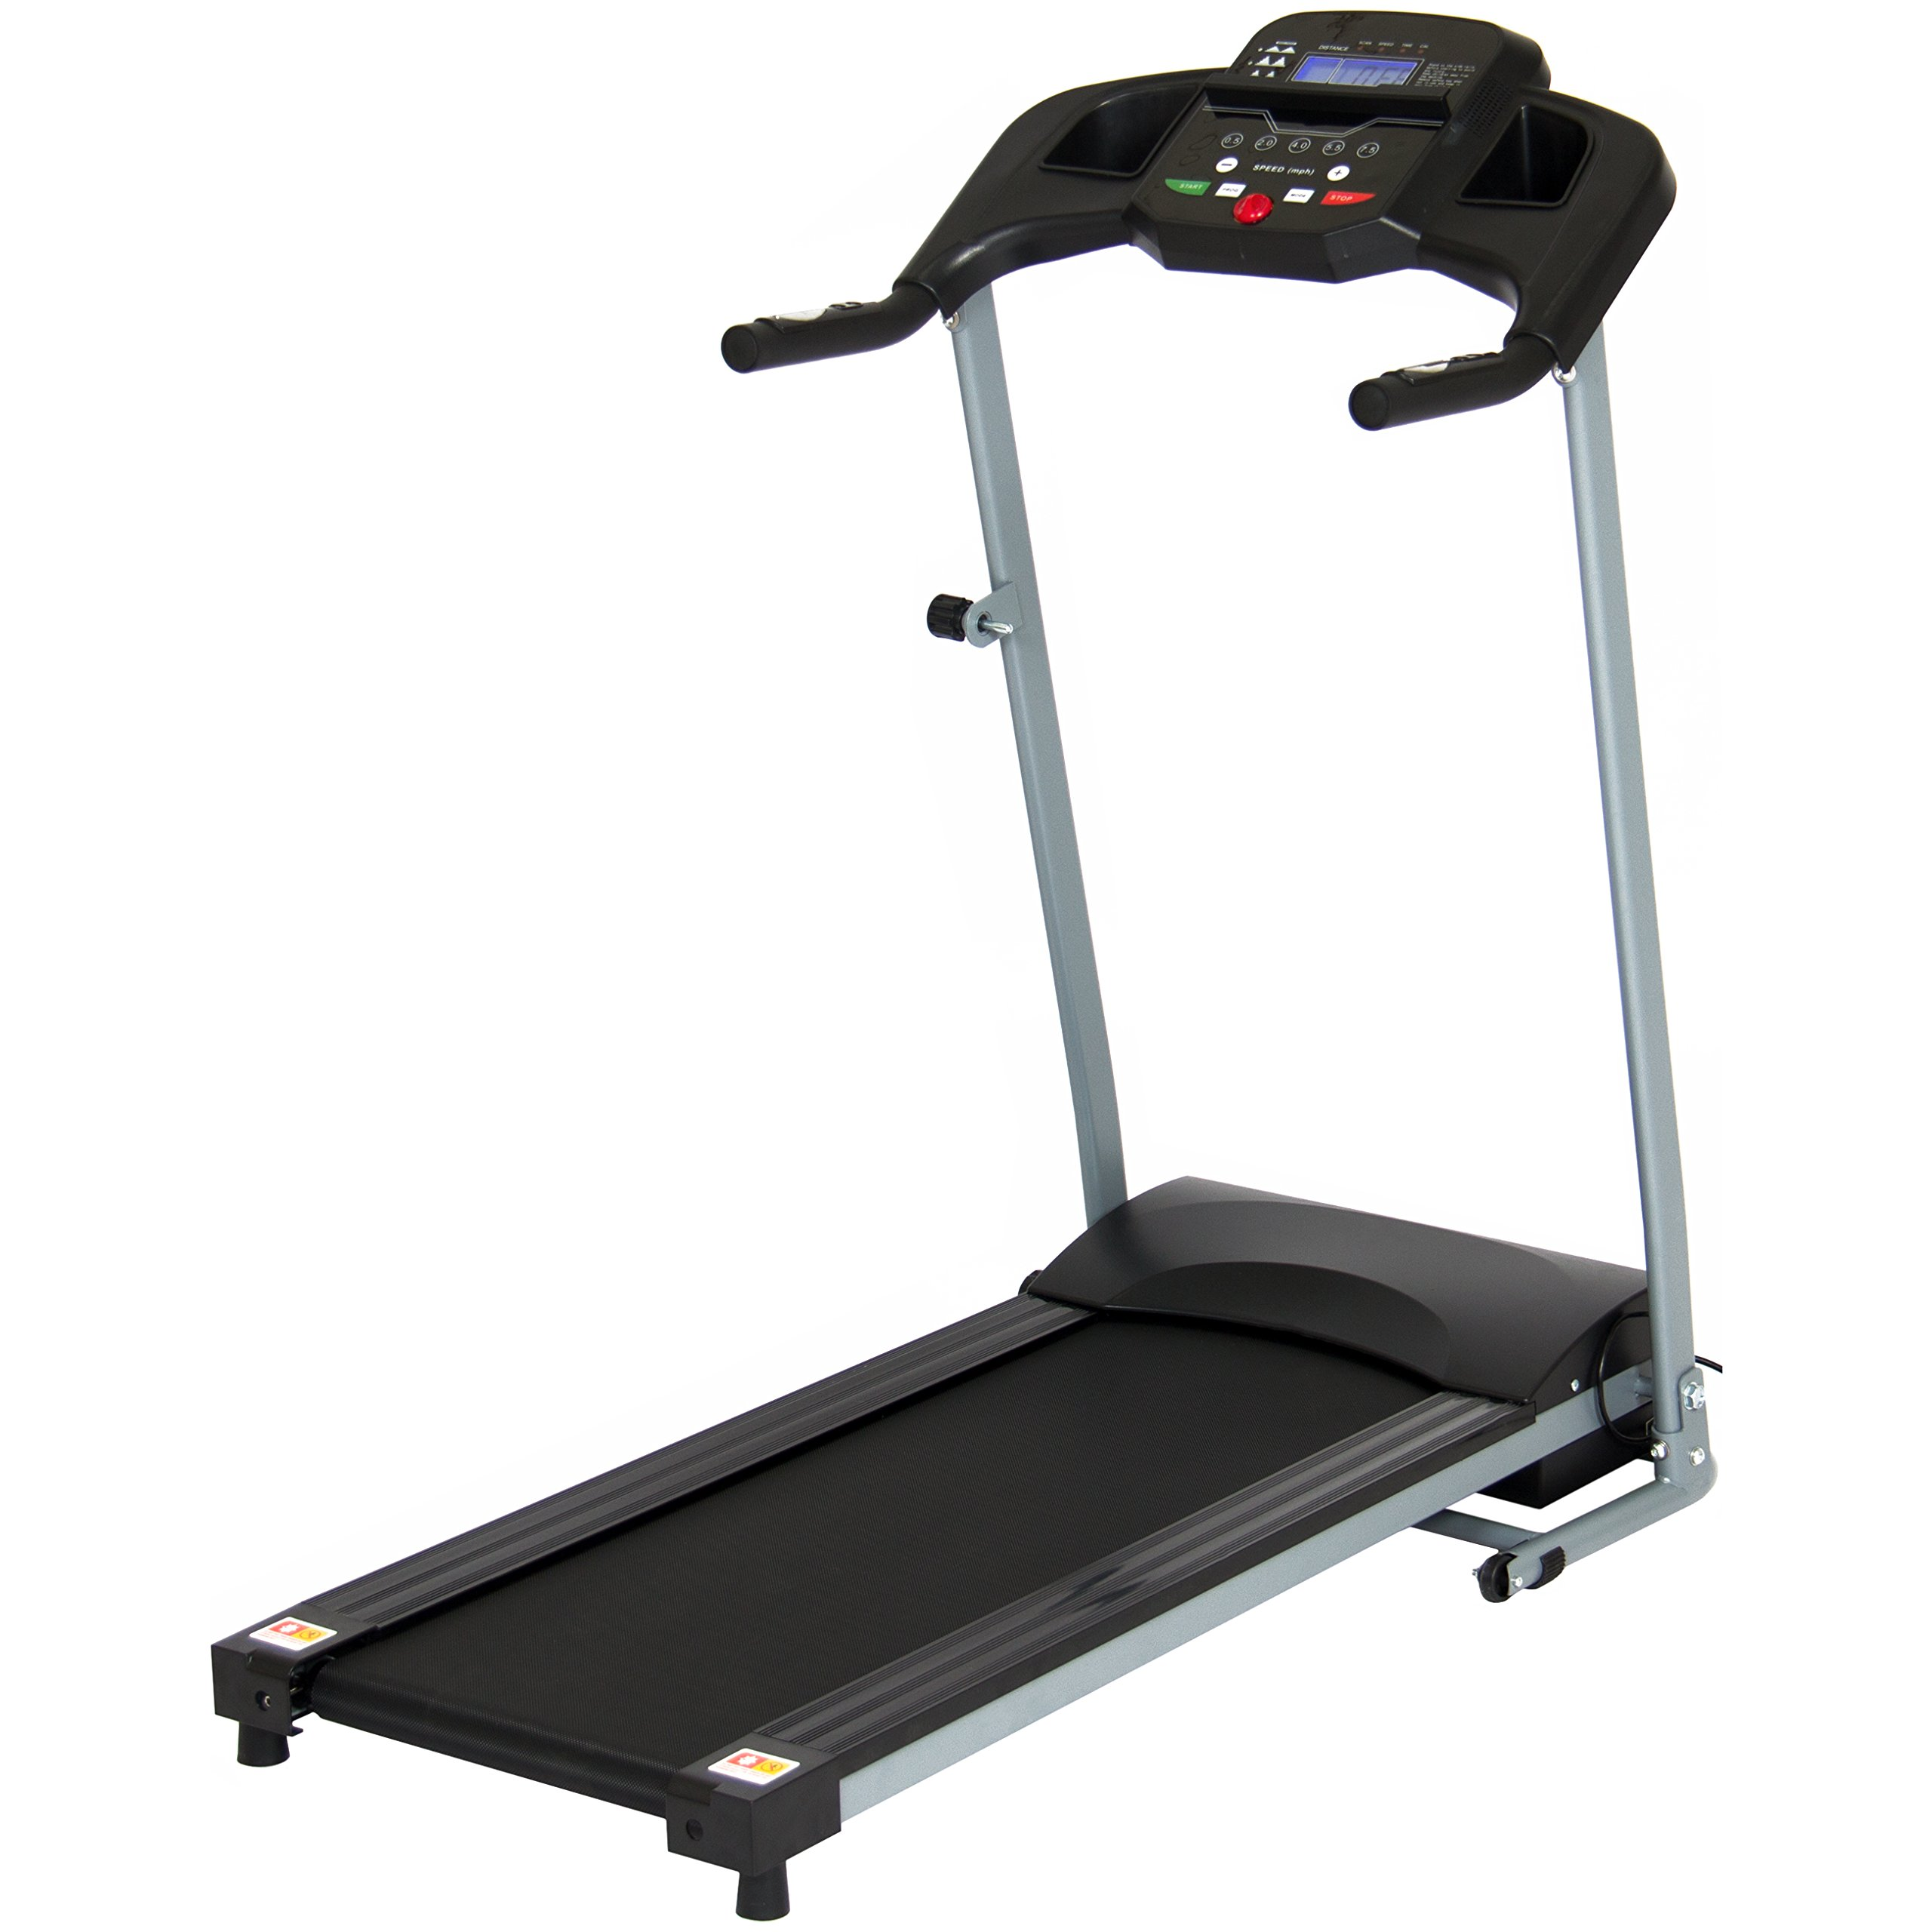 Best Choice Products 800W Portable Folding Electric Motorized Treadmill Machine w/ Rolling Wheels - Black by Best Choice Products